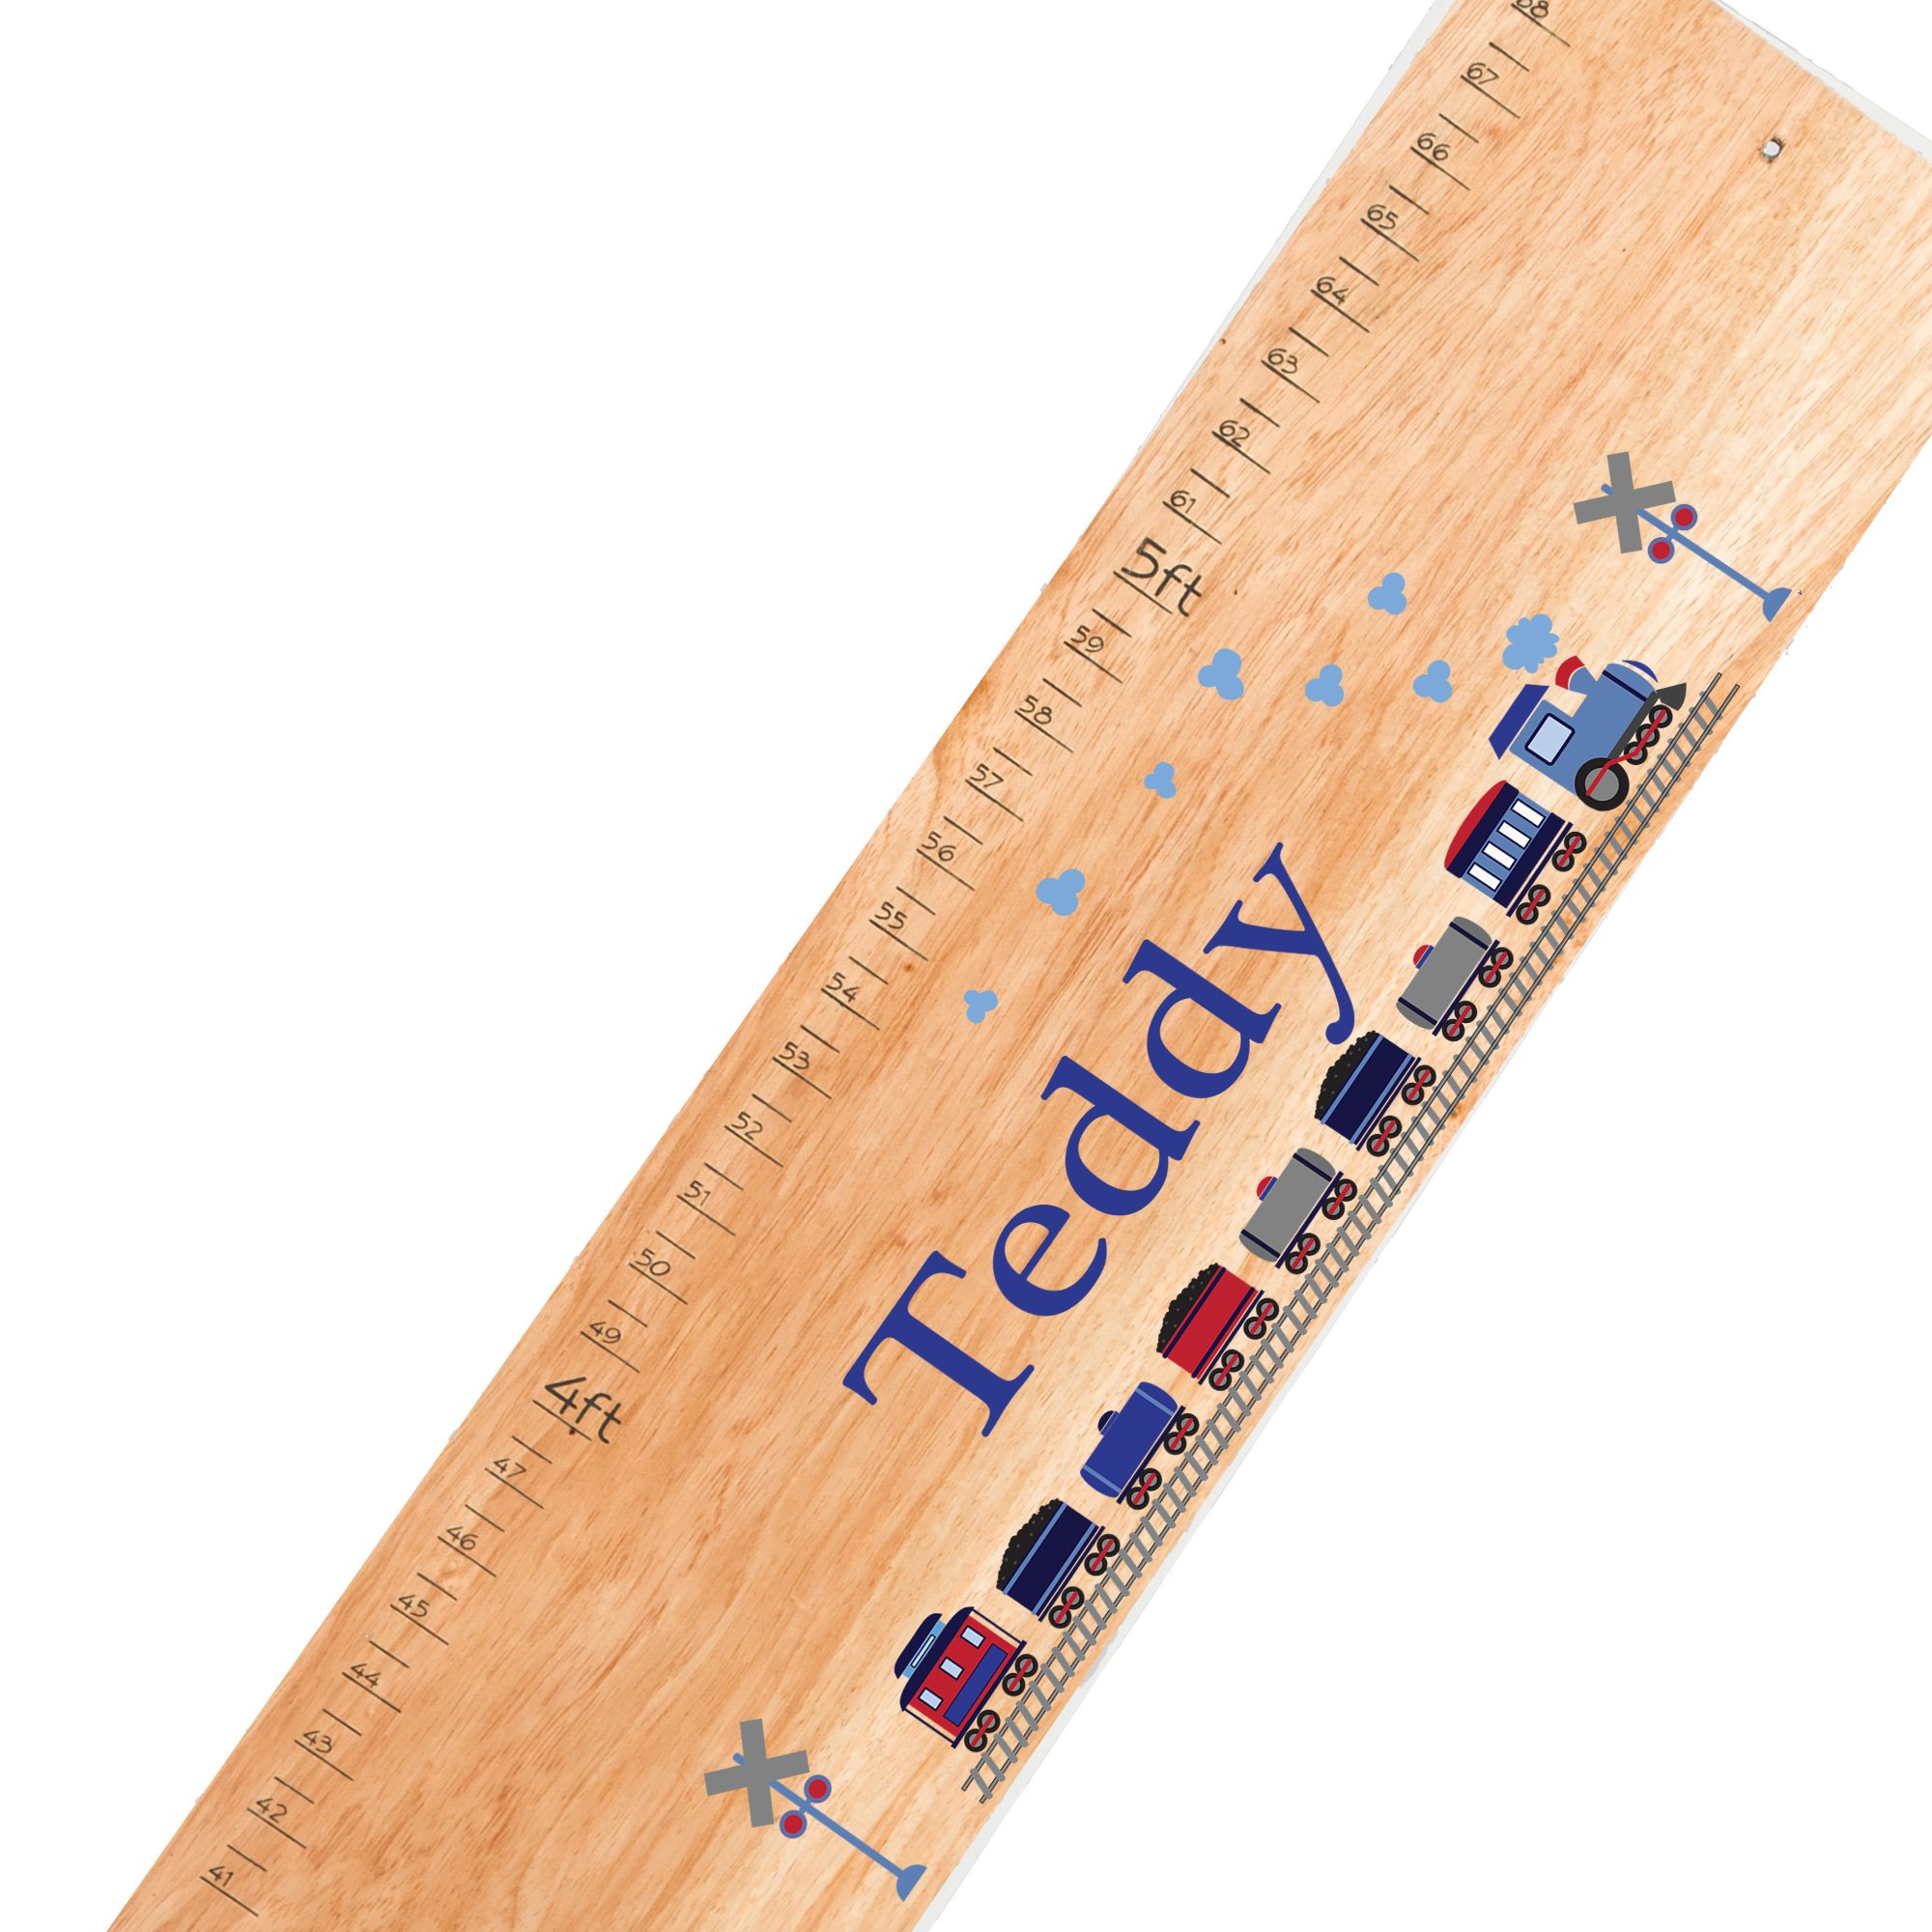 Personalized natural Train childrens wooden growth chart